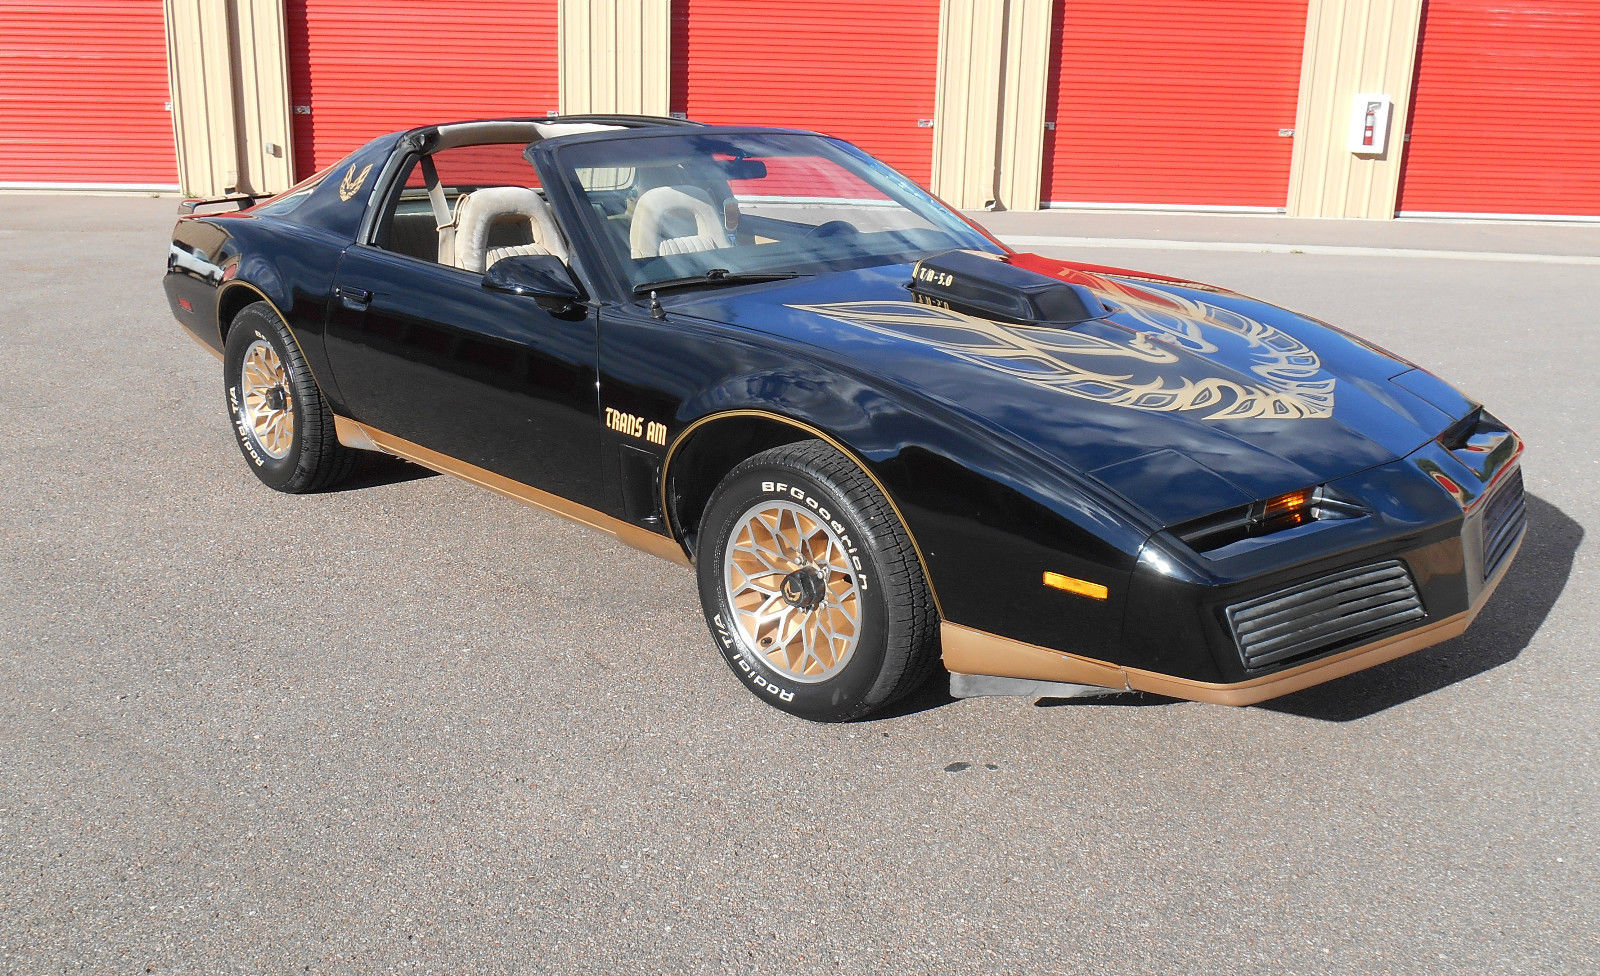 1982 Pontiac Firebird Trans Am Coupe 2-Door 5.0L - Classic ...